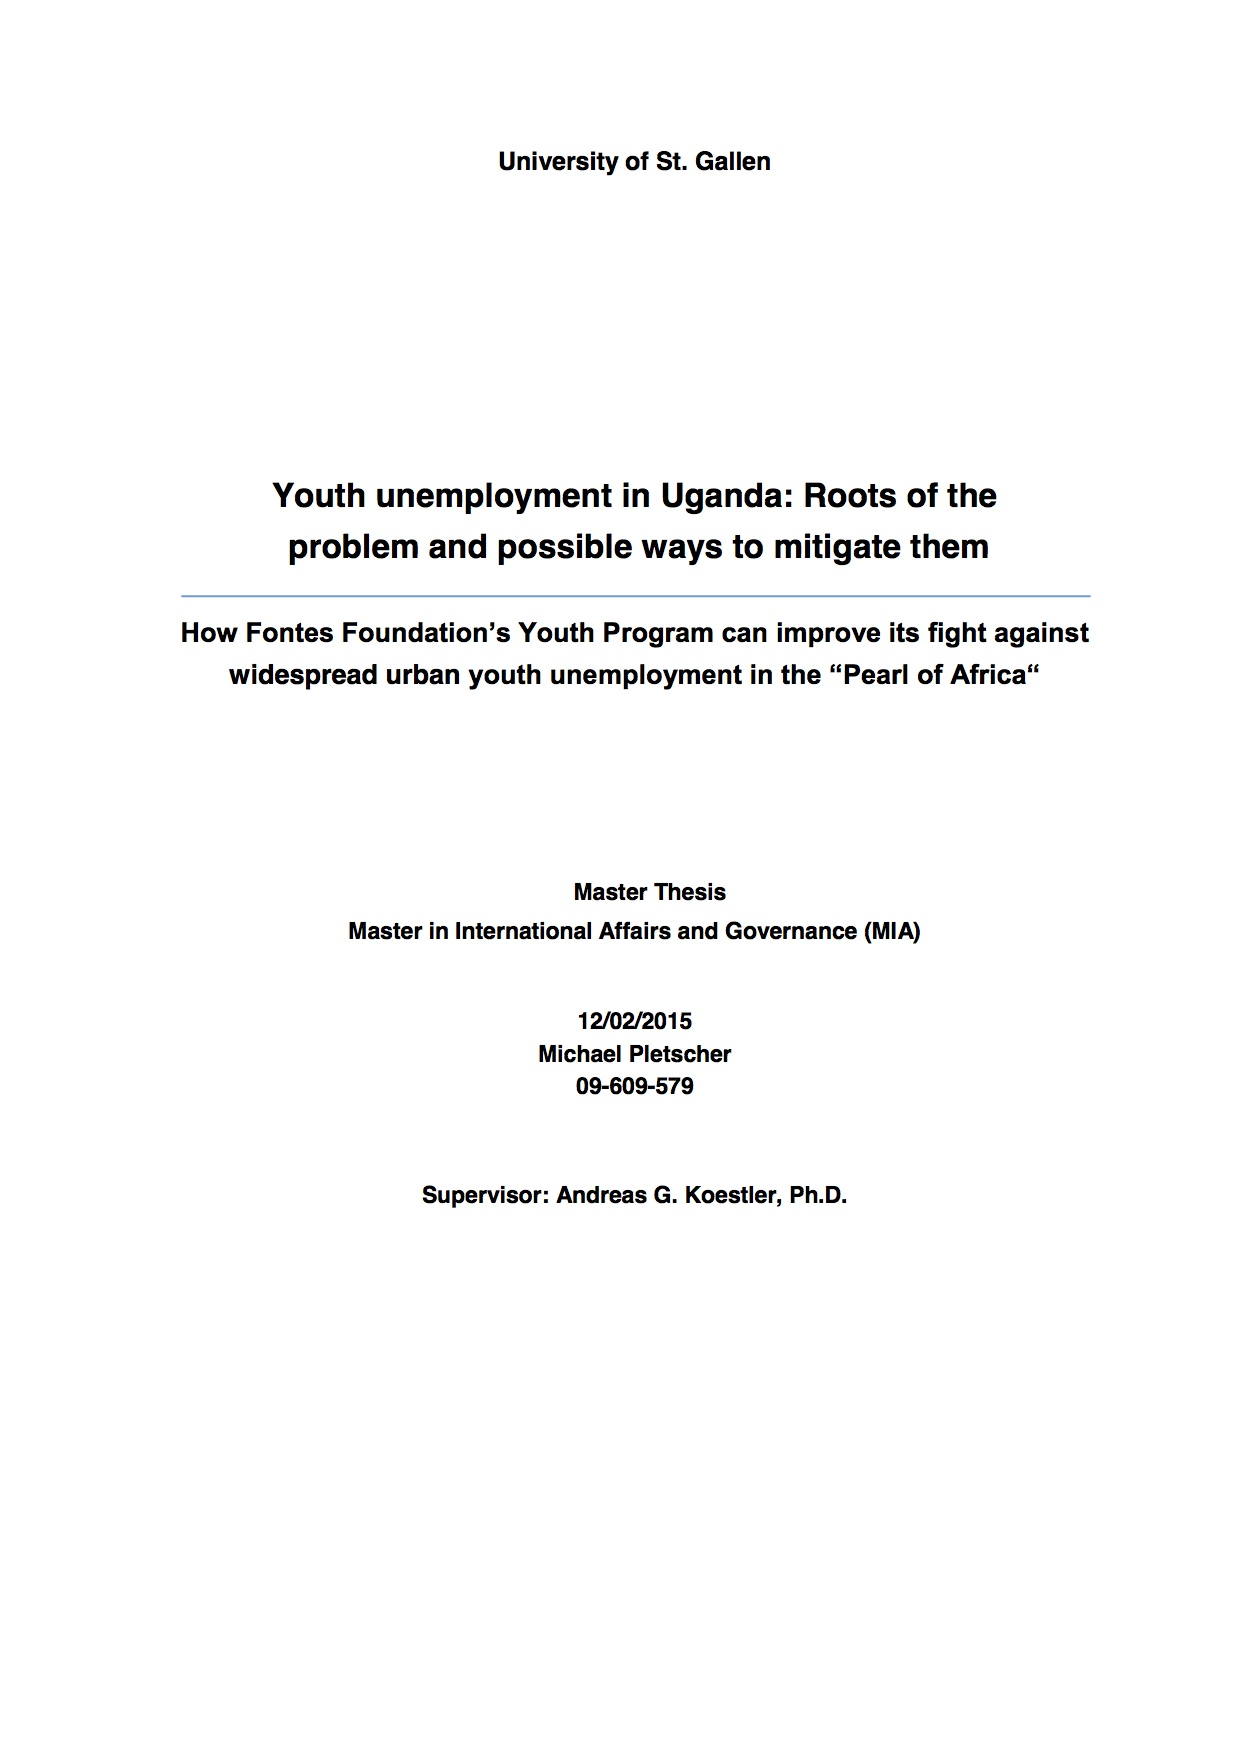 Youth unemployment in Uganda: Roots of the problem and possible ways to mitigate them